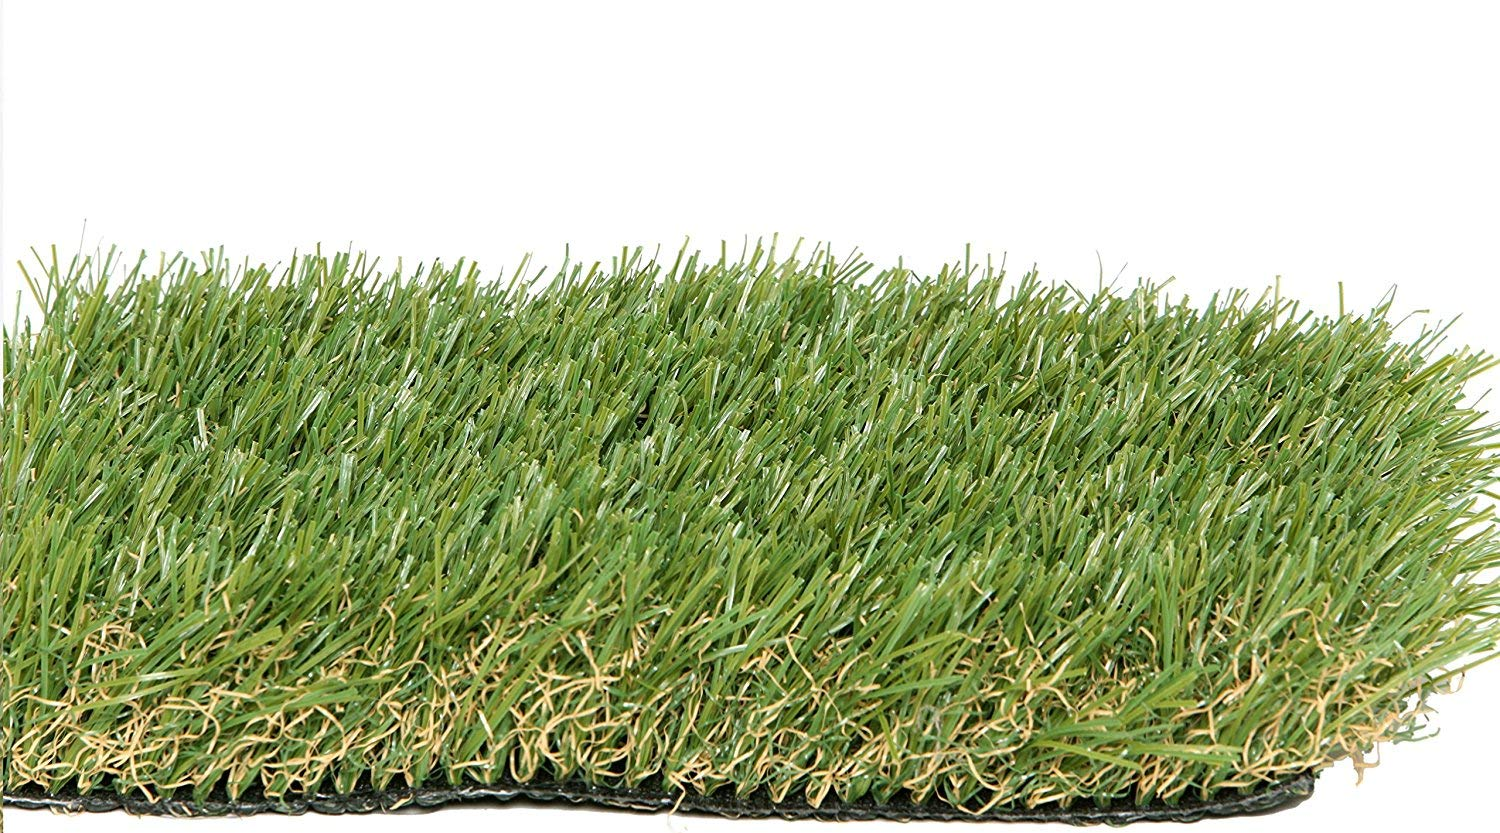 Pet Zen Garden 5.5ftx6.5ft Premium Artificial Grass Patch w/Drainage Holes & Rubber Backing Realistic Synthetic Mat Pet Turf Fake Dogs, 5.5'x 6.5', Green